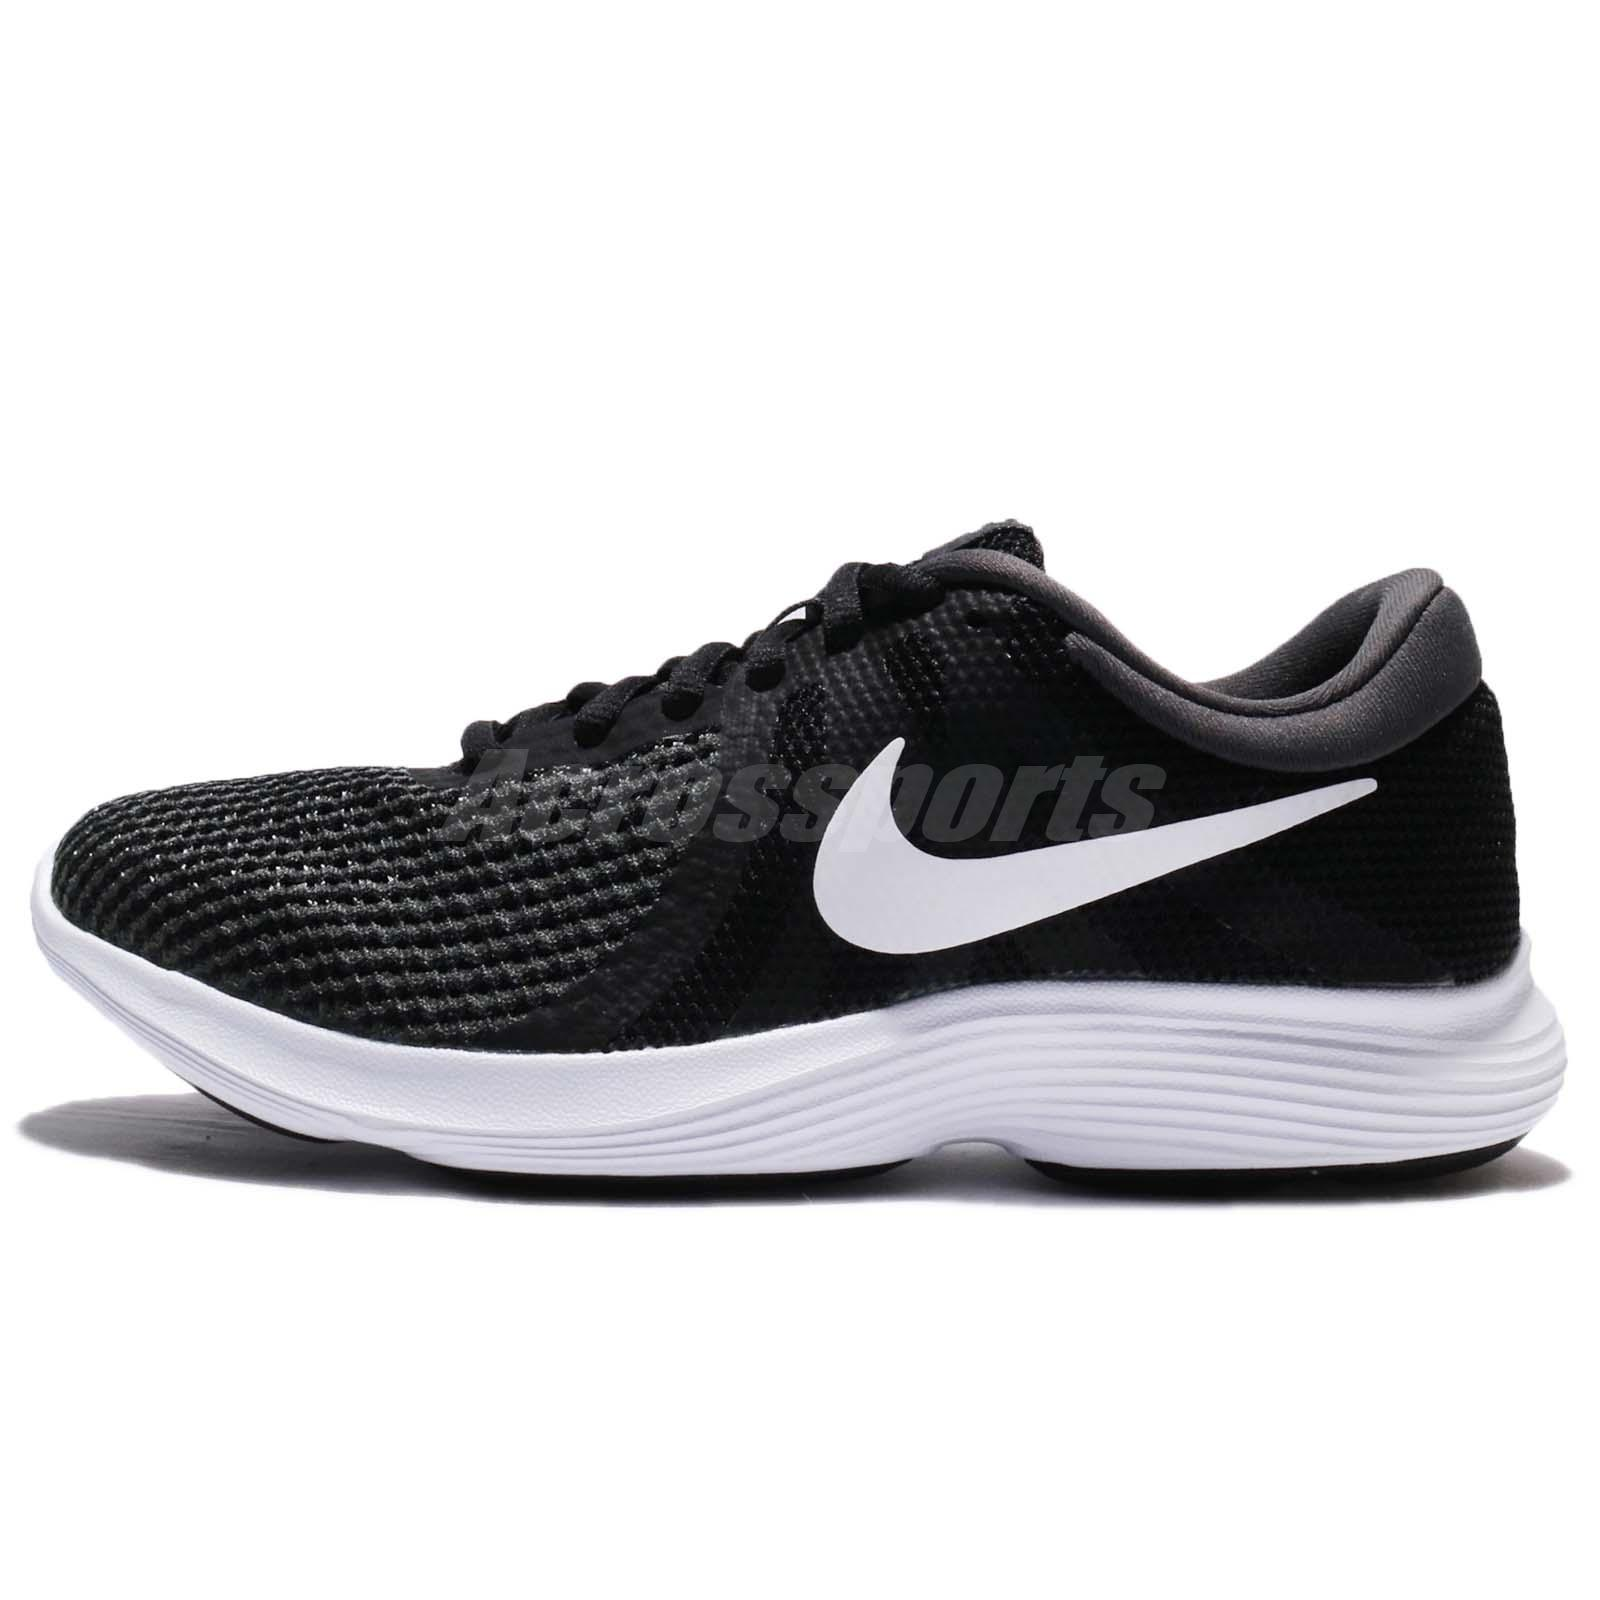 ec400ba0b6a4 Nike Wmns Revolution 4 IV Black White Women Running Shoes Sneakers 908999- 001